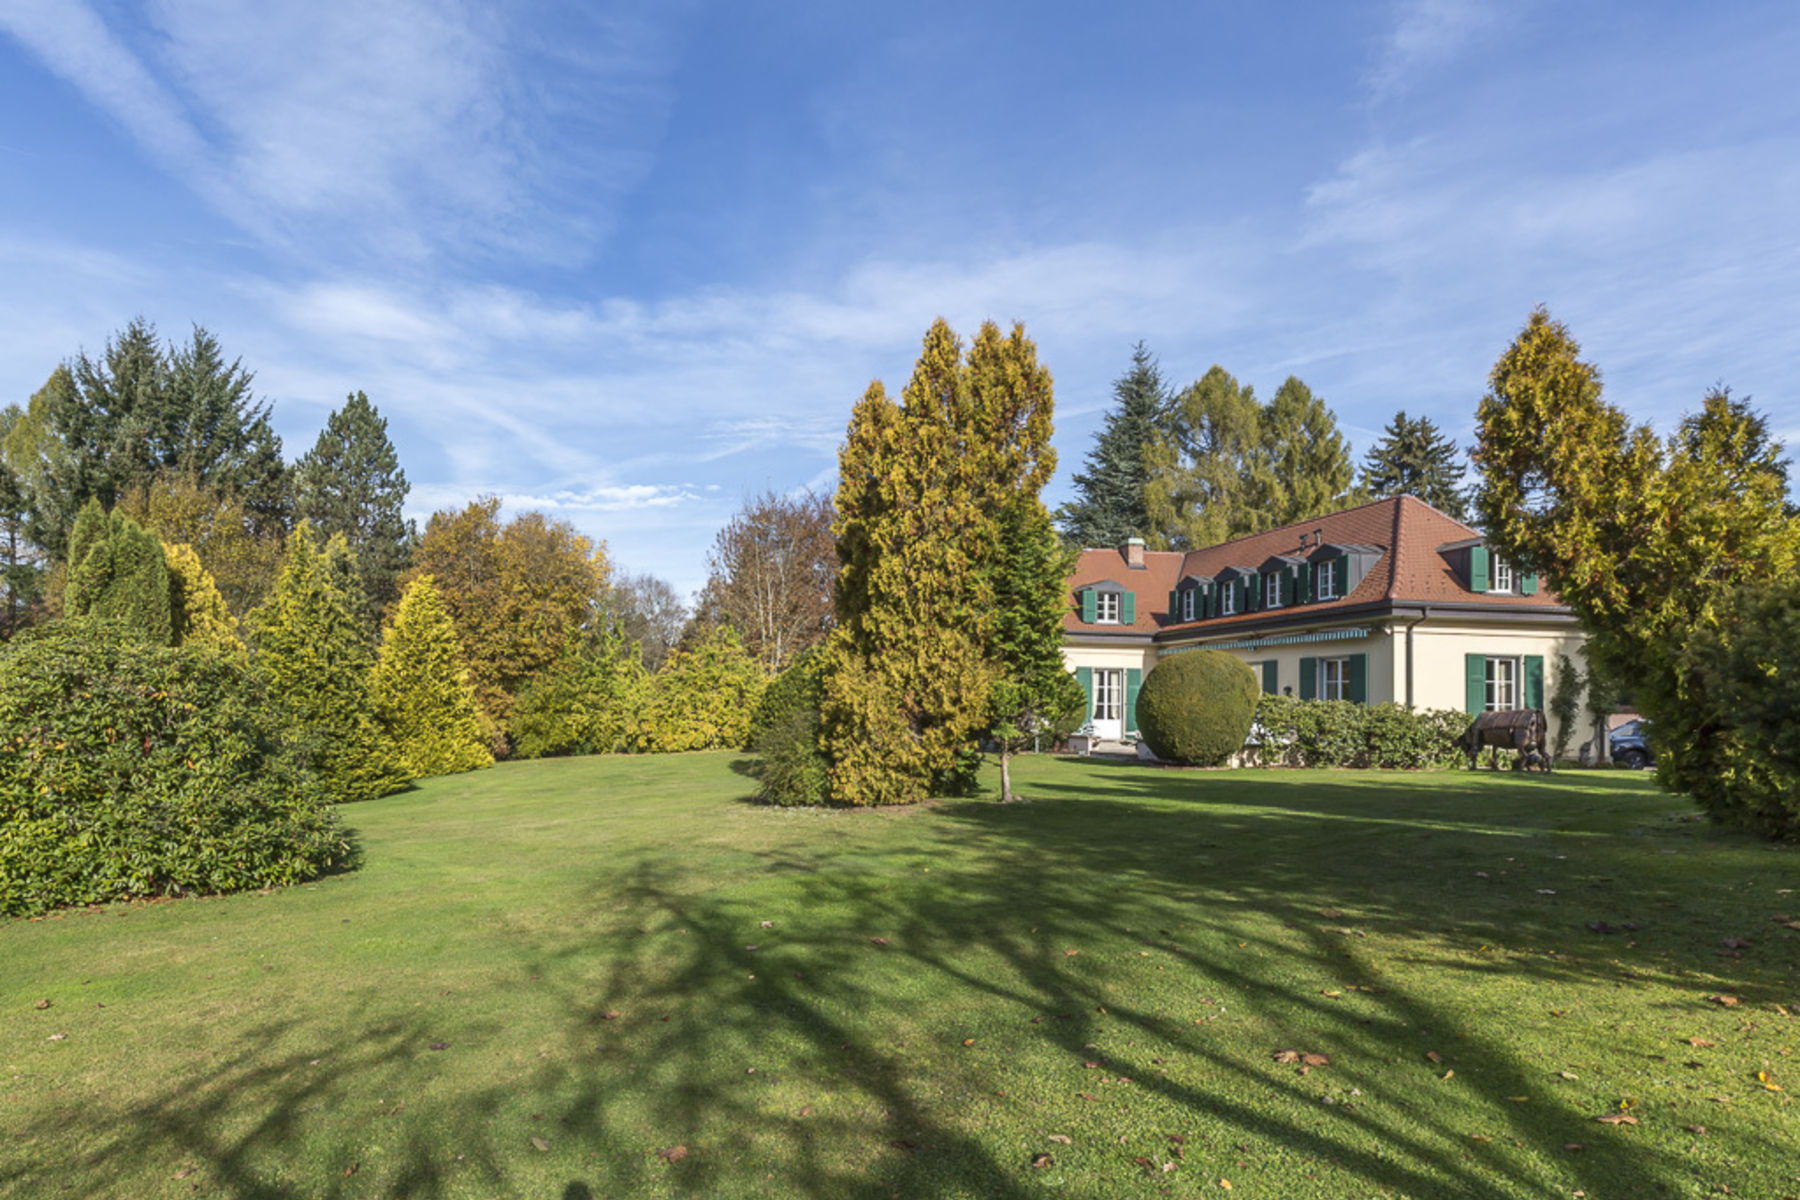 Single Family Home for Sale at Classical property in a leafy setting on the edge of town Epalinges Epalinges, Vaud, 1066 Switzerland